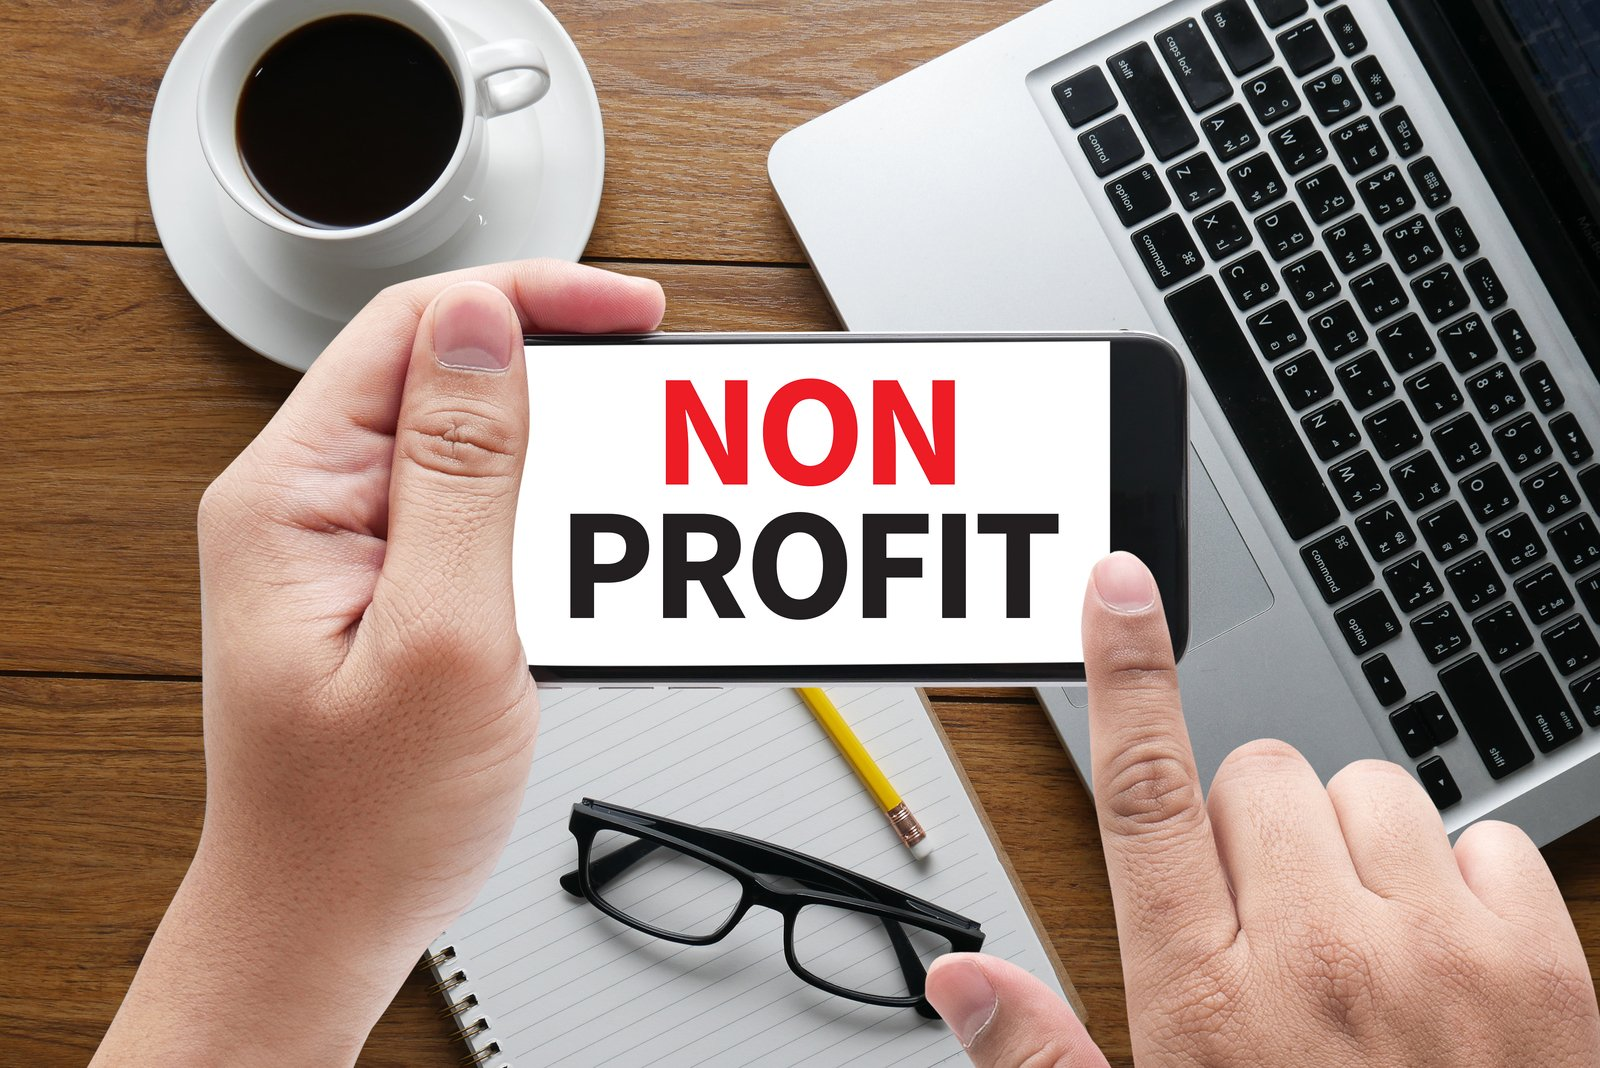 CyberSecurity for Nonprofits: 8 Effective Hacks to Protect Your Donor Data